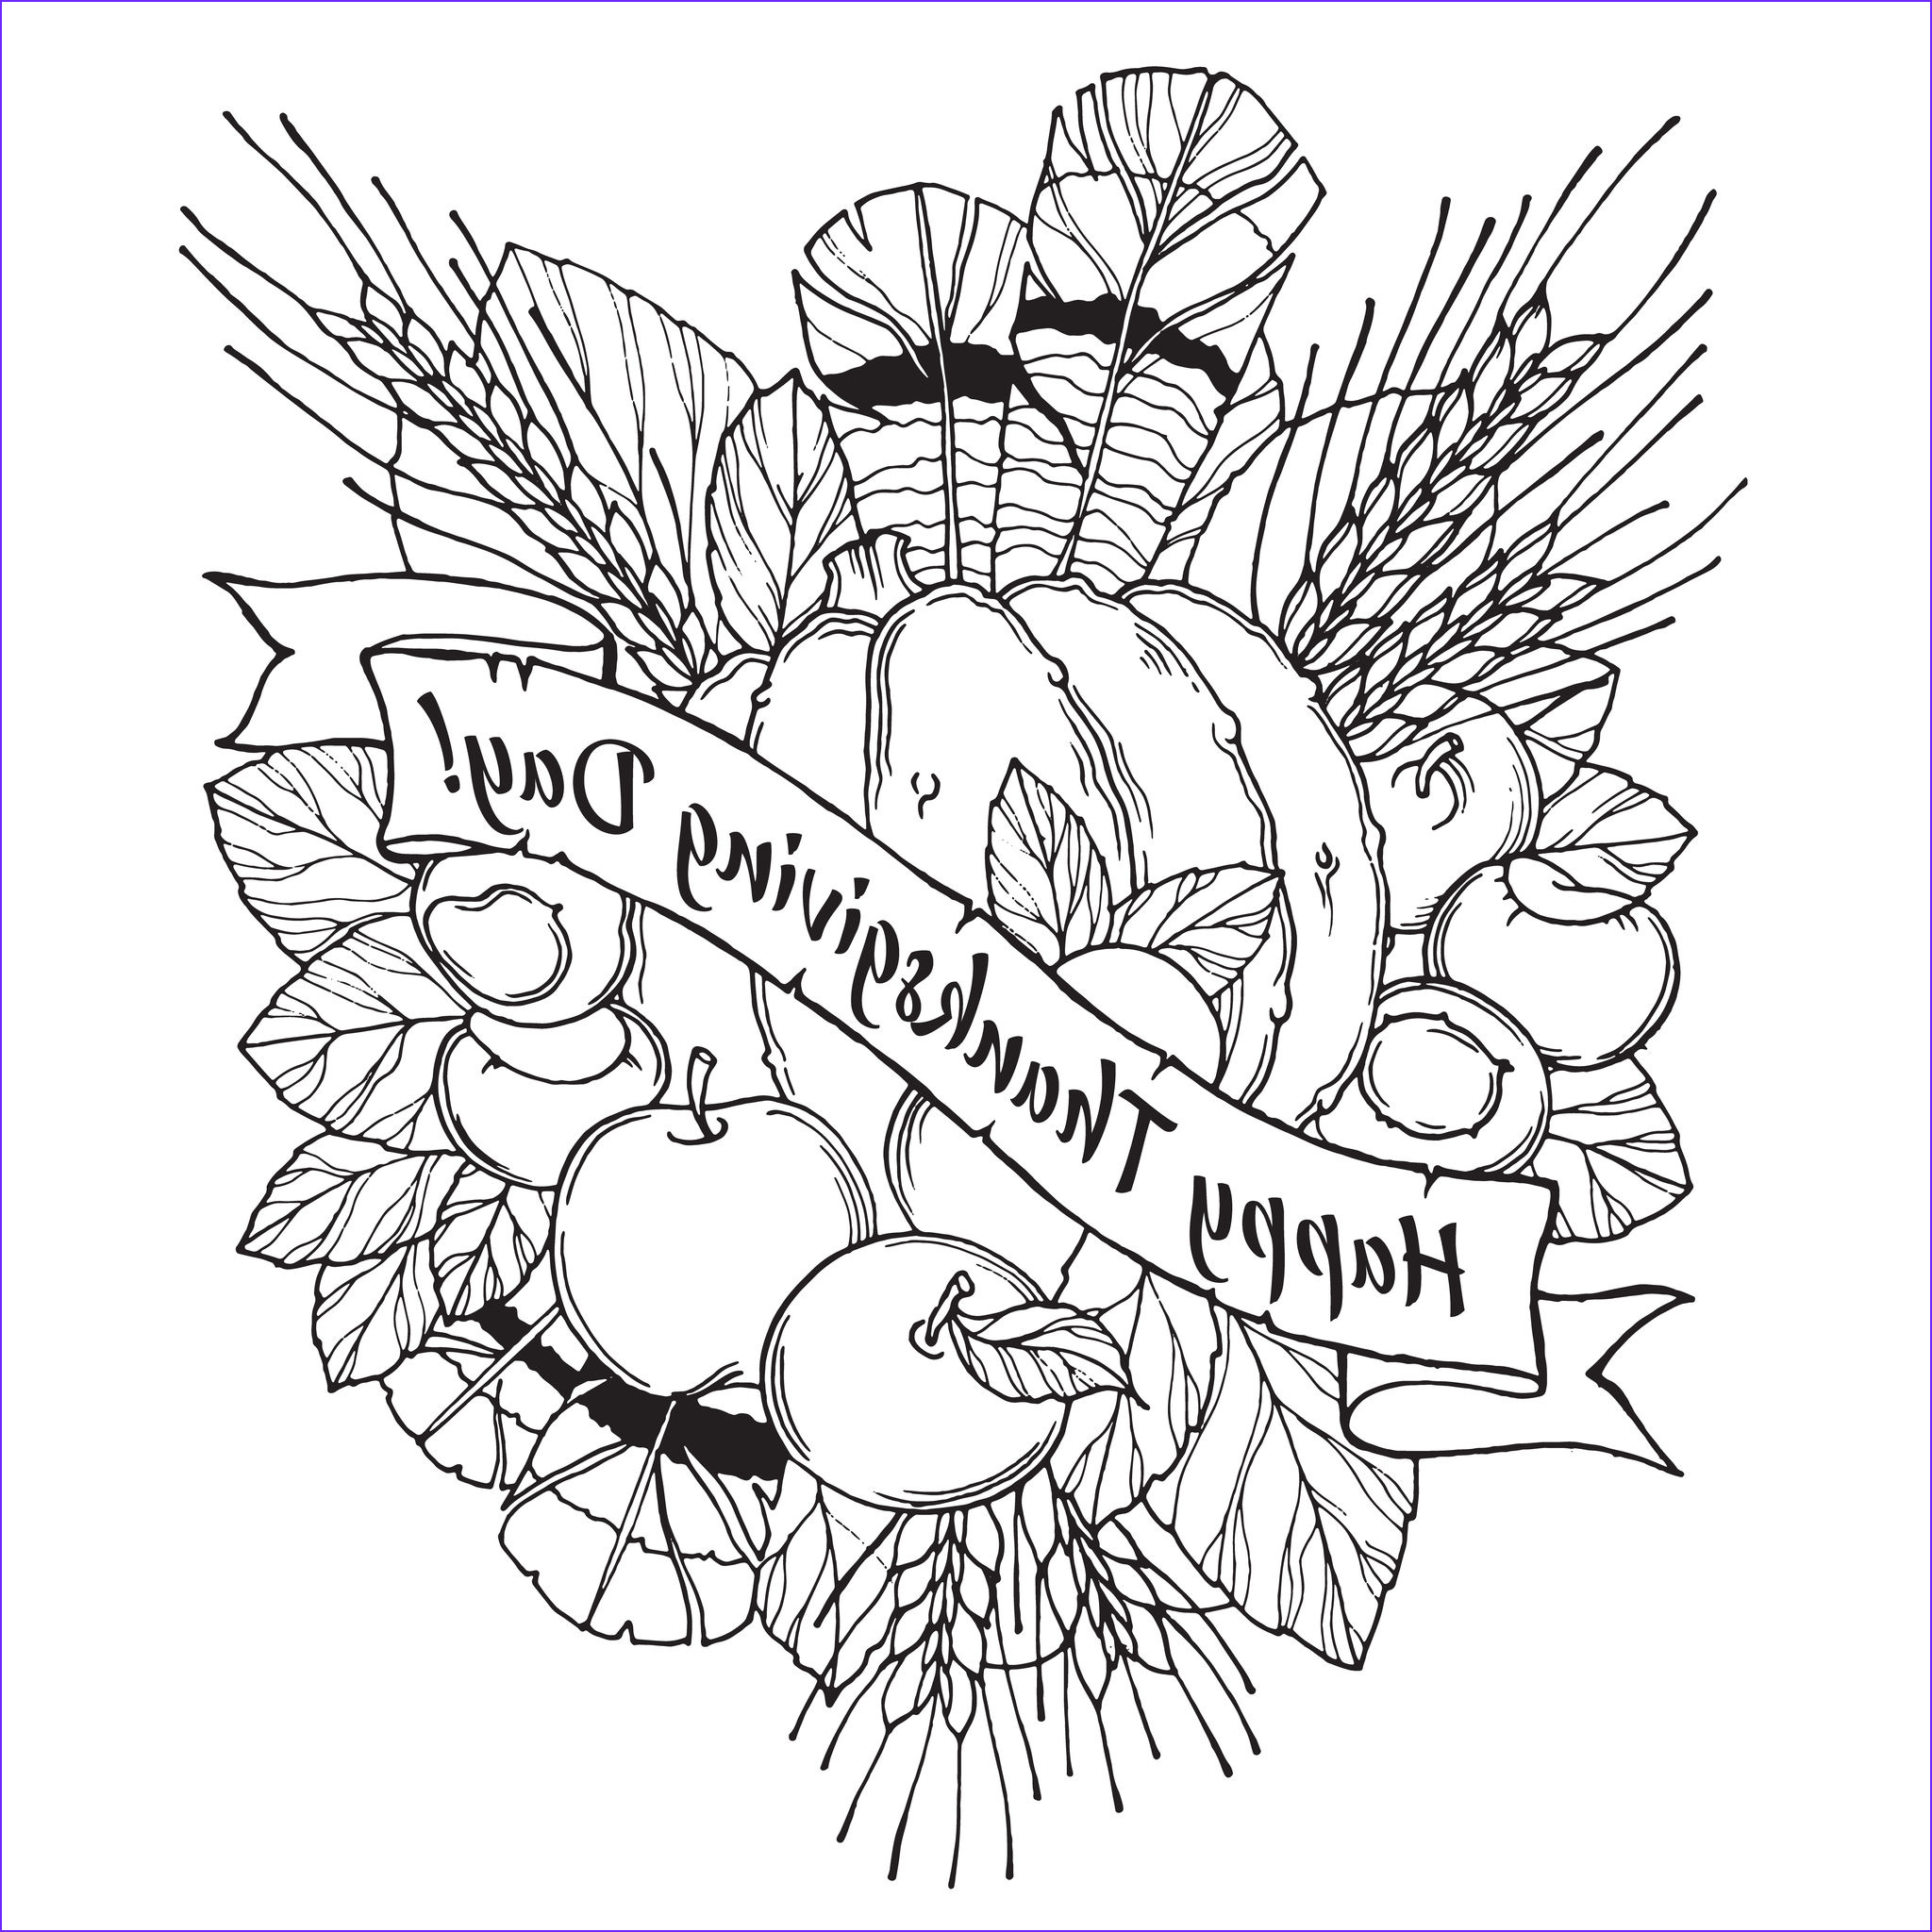 Coloring Sheets For Adults Cool Image Thanksgiving Coloring Pages For Adults To And